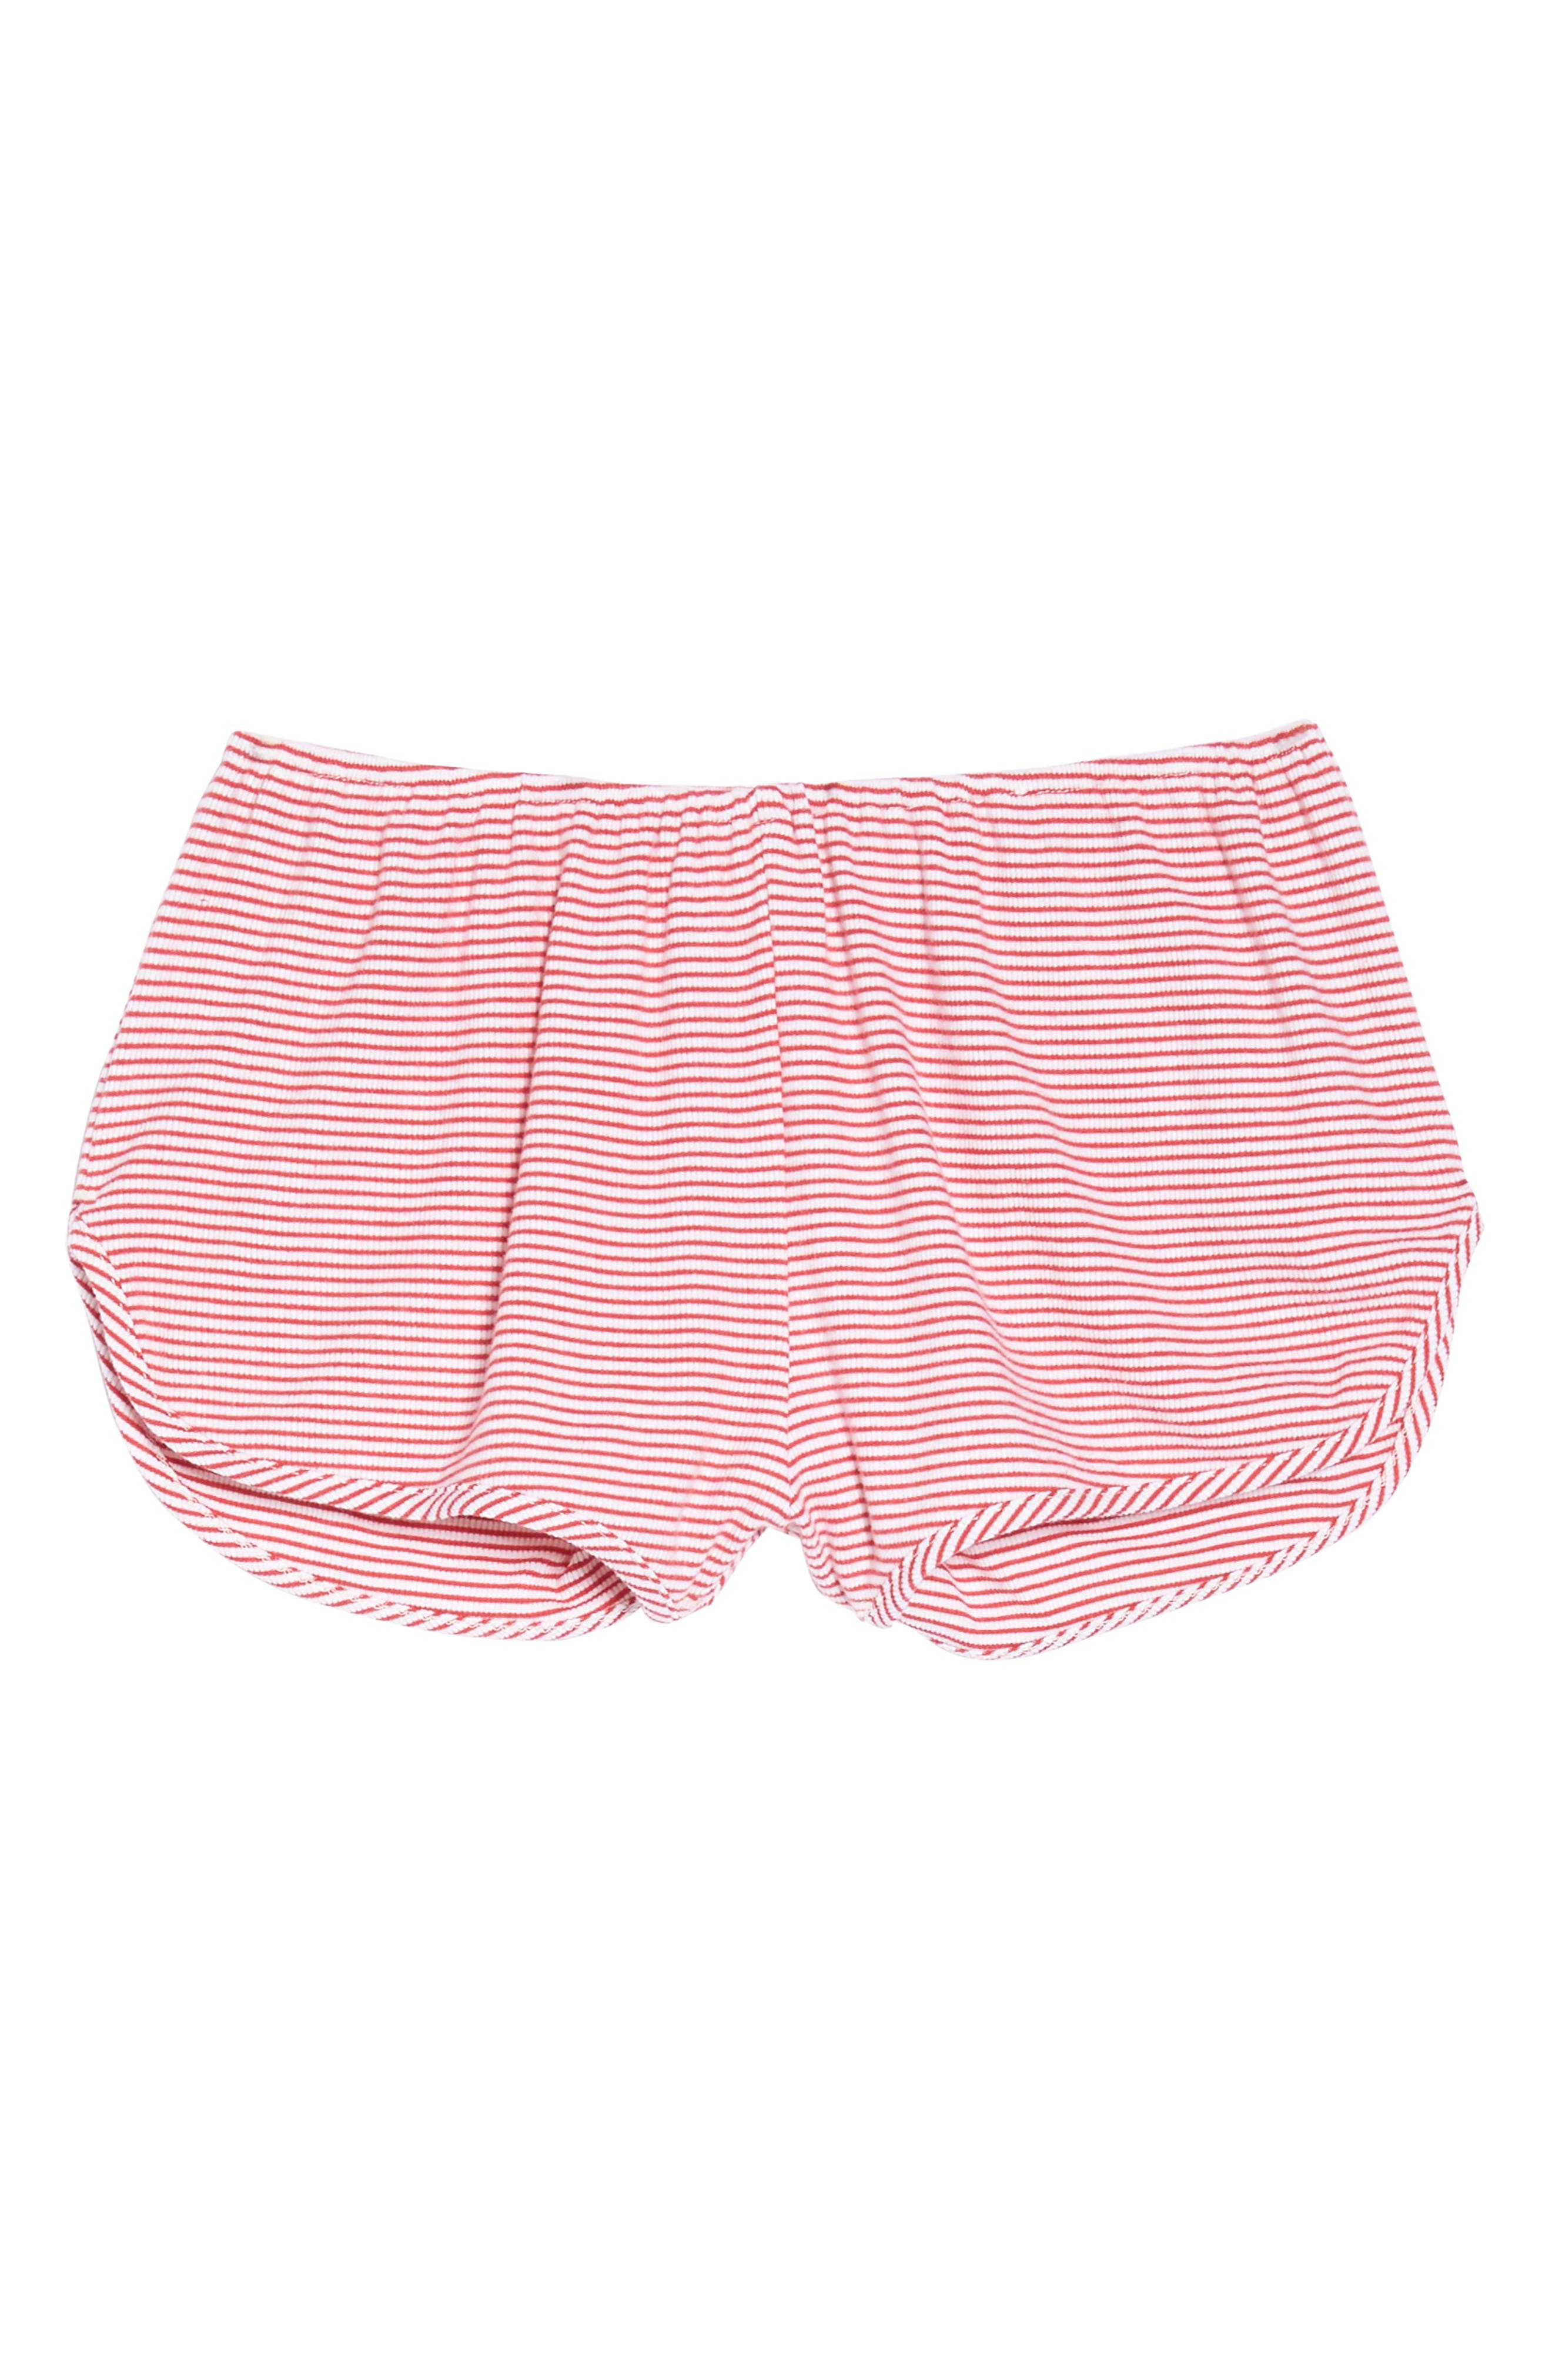 Penny Shorts,                             Alternate thumbnail 6, color,                             Red Stripe